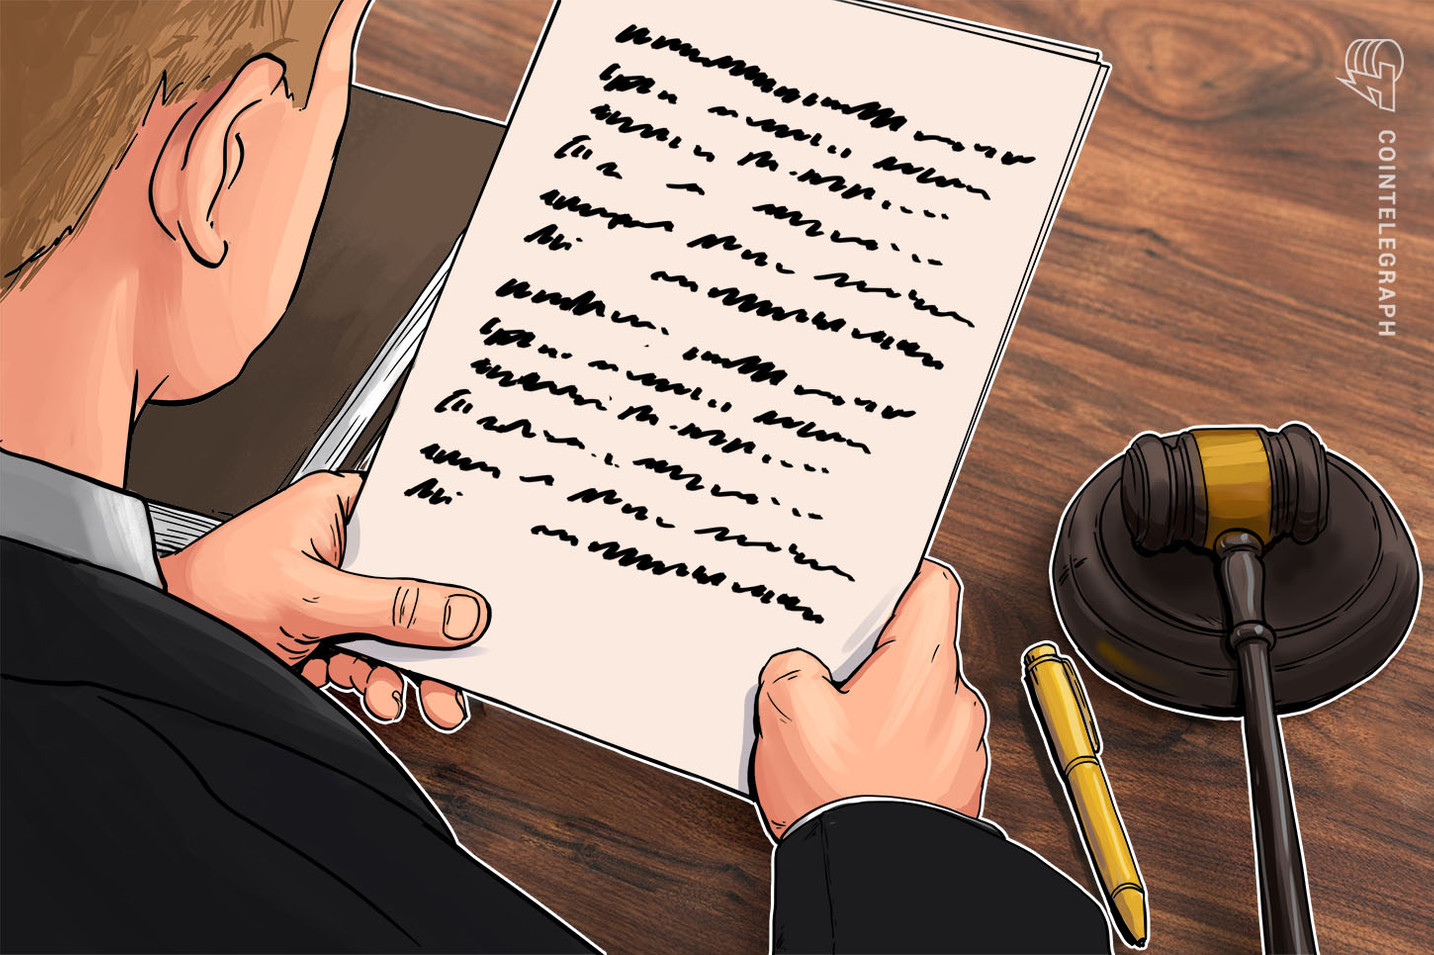 Cyprus Court Withdraws Money Laundering, Fraud Lawsuit Against Alleged BTC-e Operator